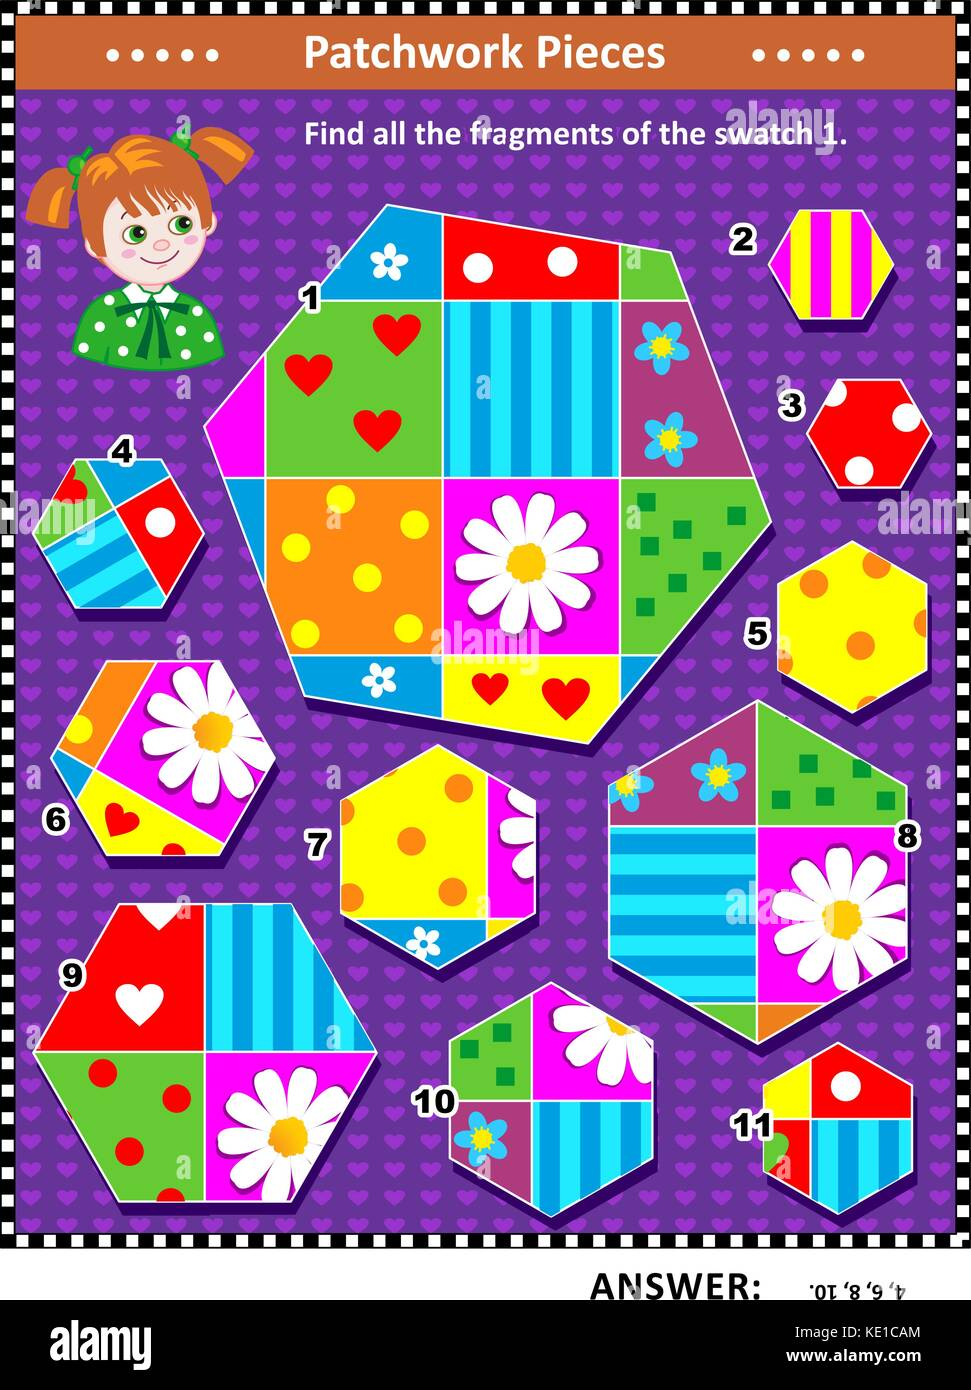 Quilting or patchwork themed IQ training visual puzzle (suitable both for kids and adults): Find all the fragments - Stock Image